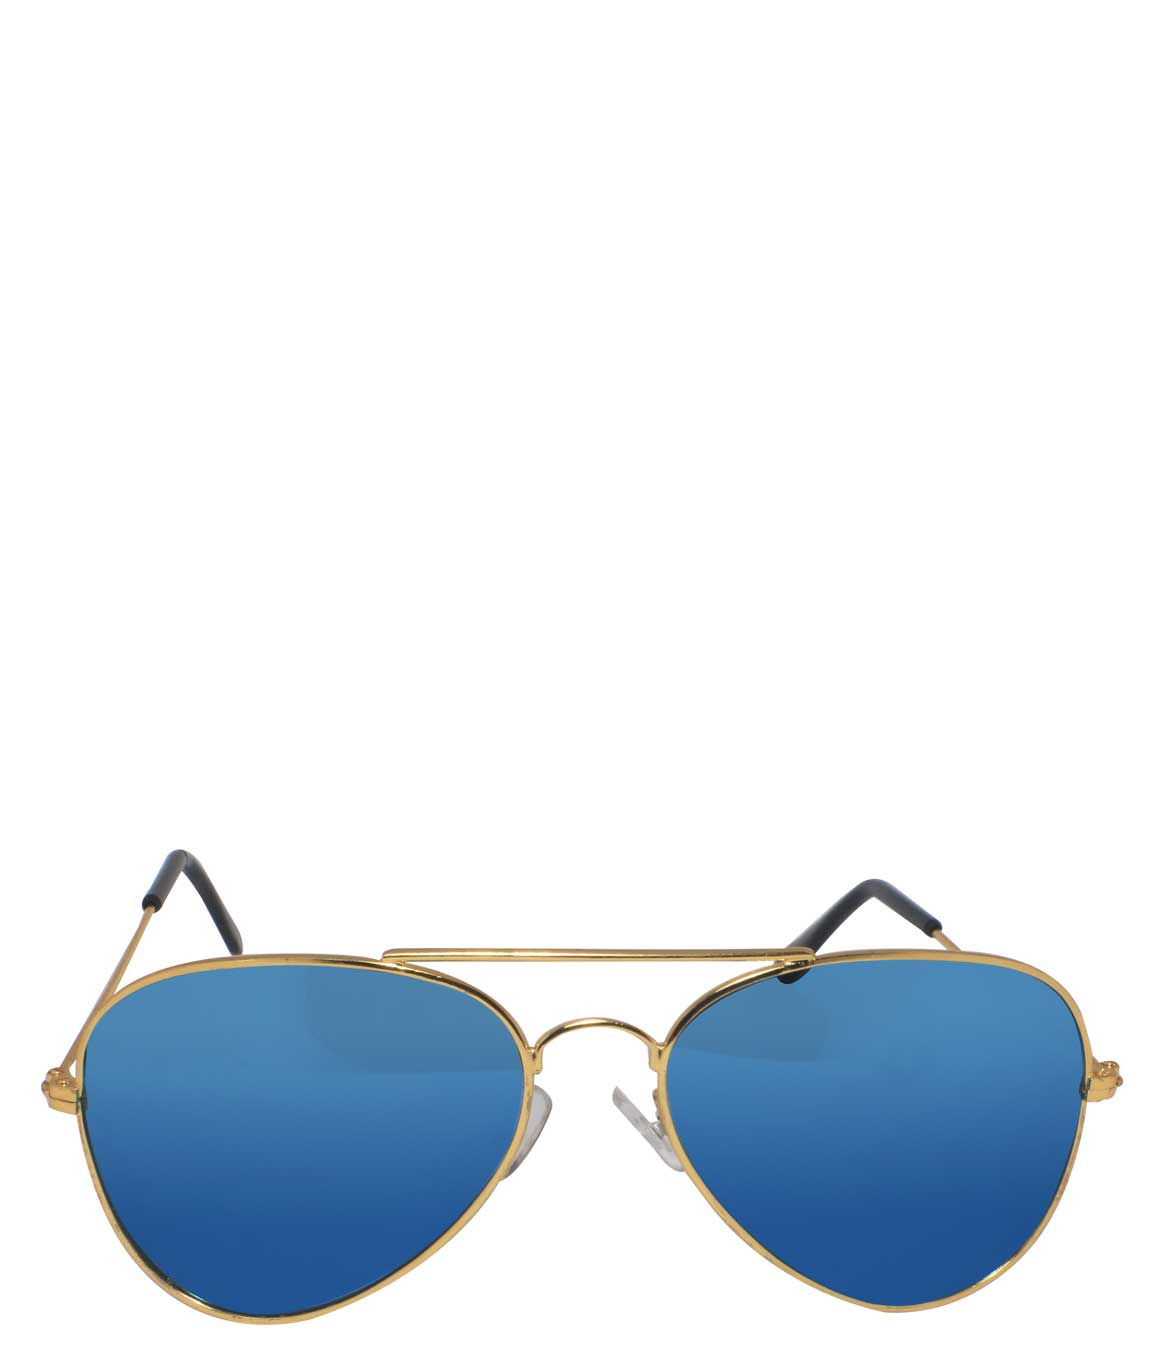 BLUE GOLDEN AVIATOR